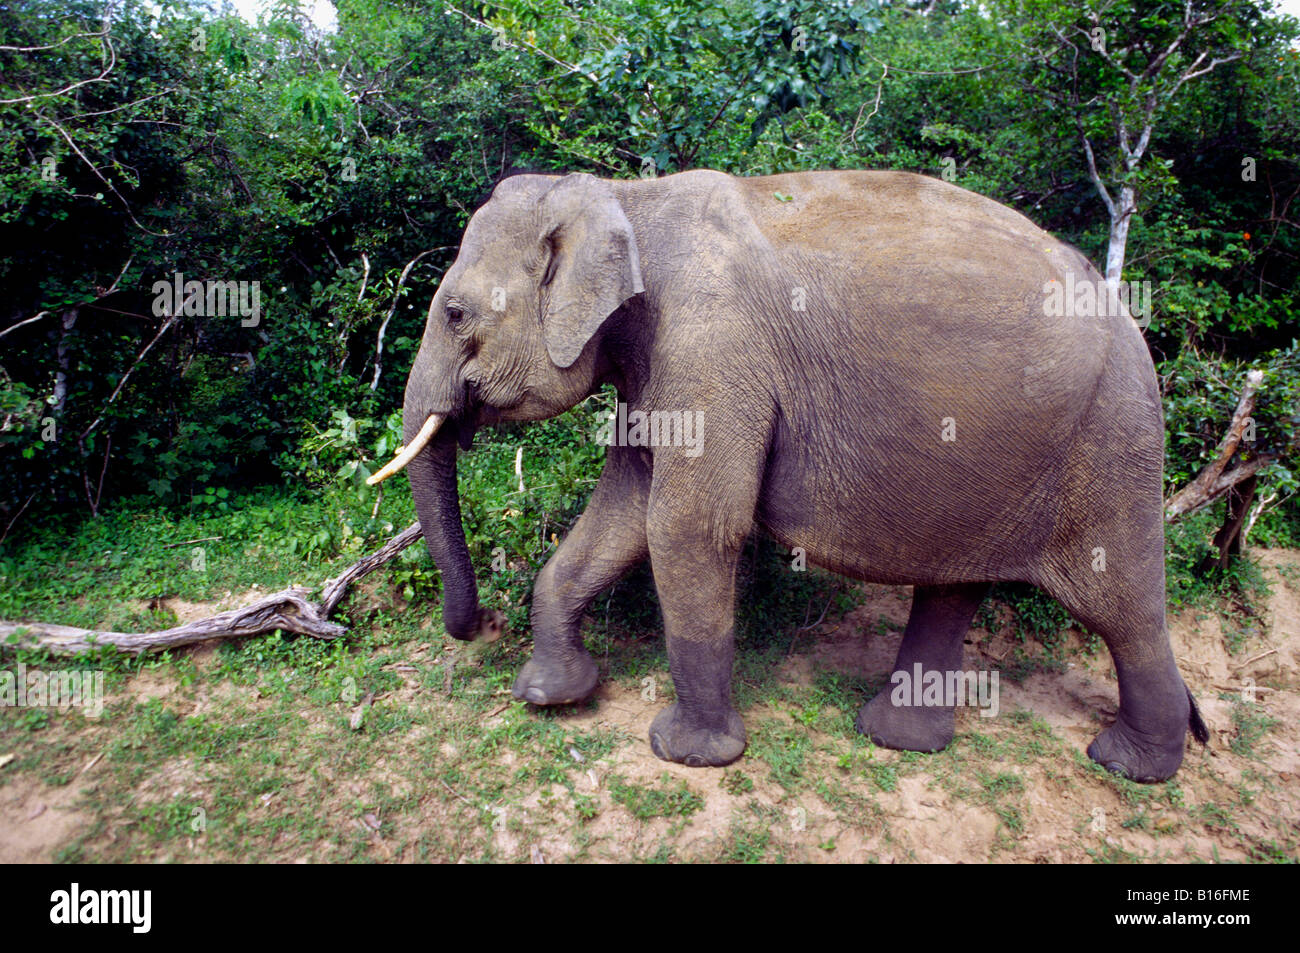 Elephant crossing jeep track. Yala West National Park (Ruhuna), Sri lanka. - Stock Image